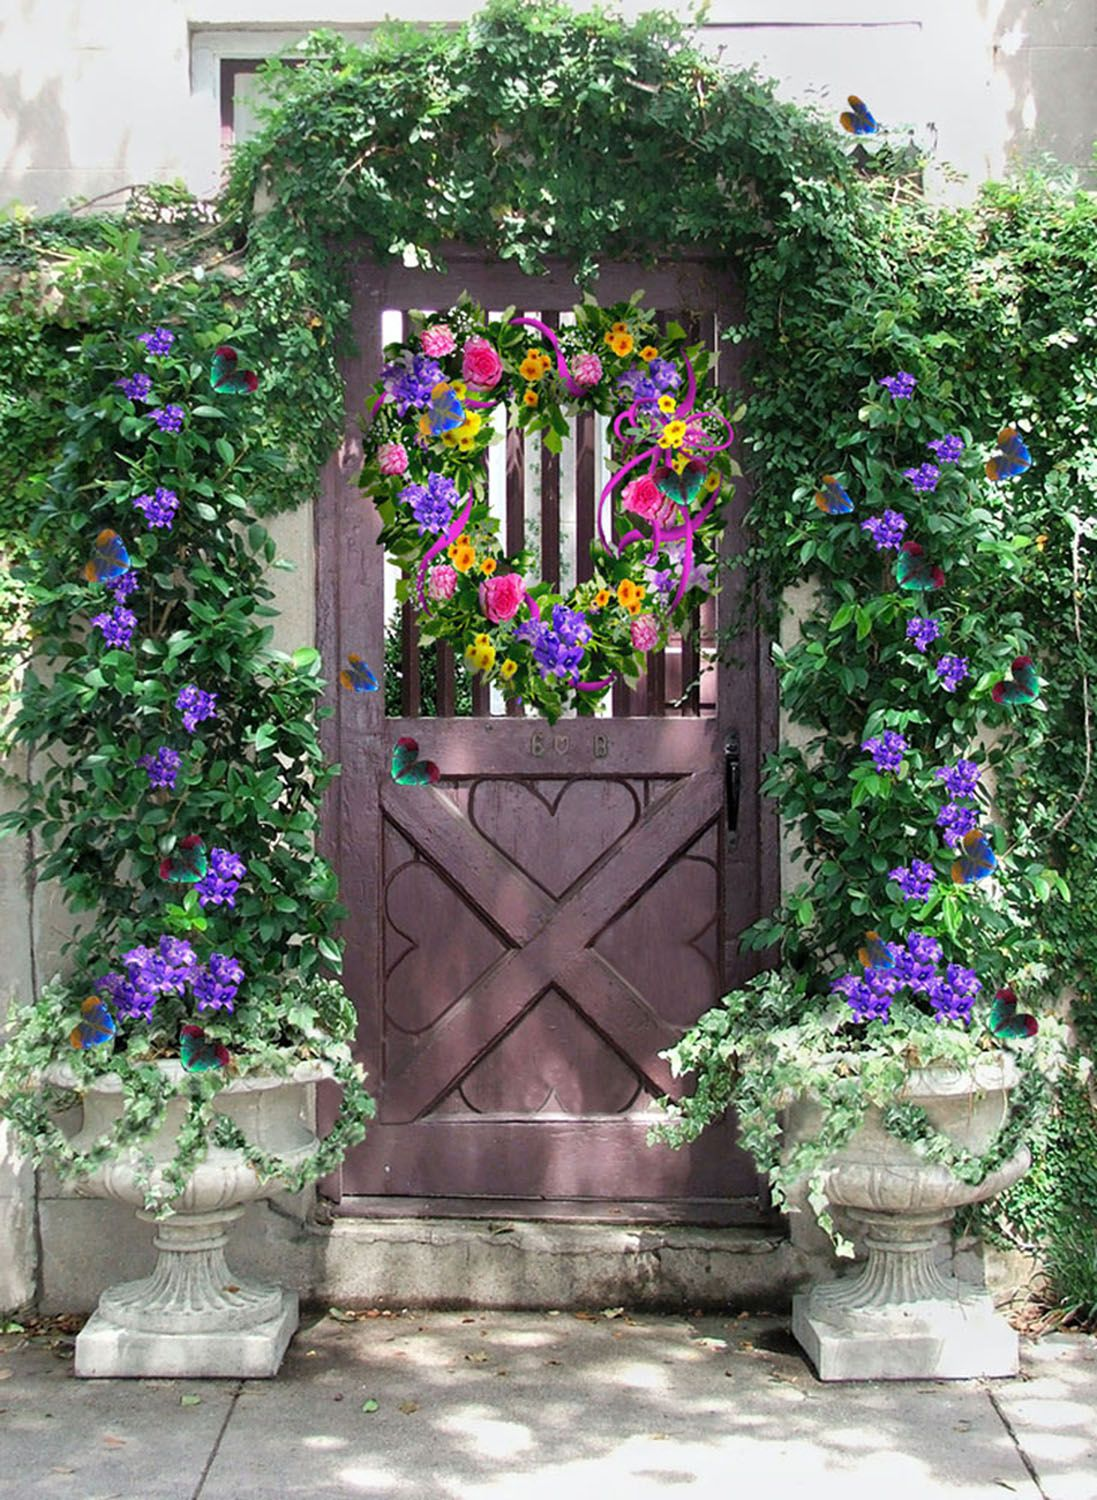 Garden Gate Picture, By Artgirl1935 For: Heart Shaped